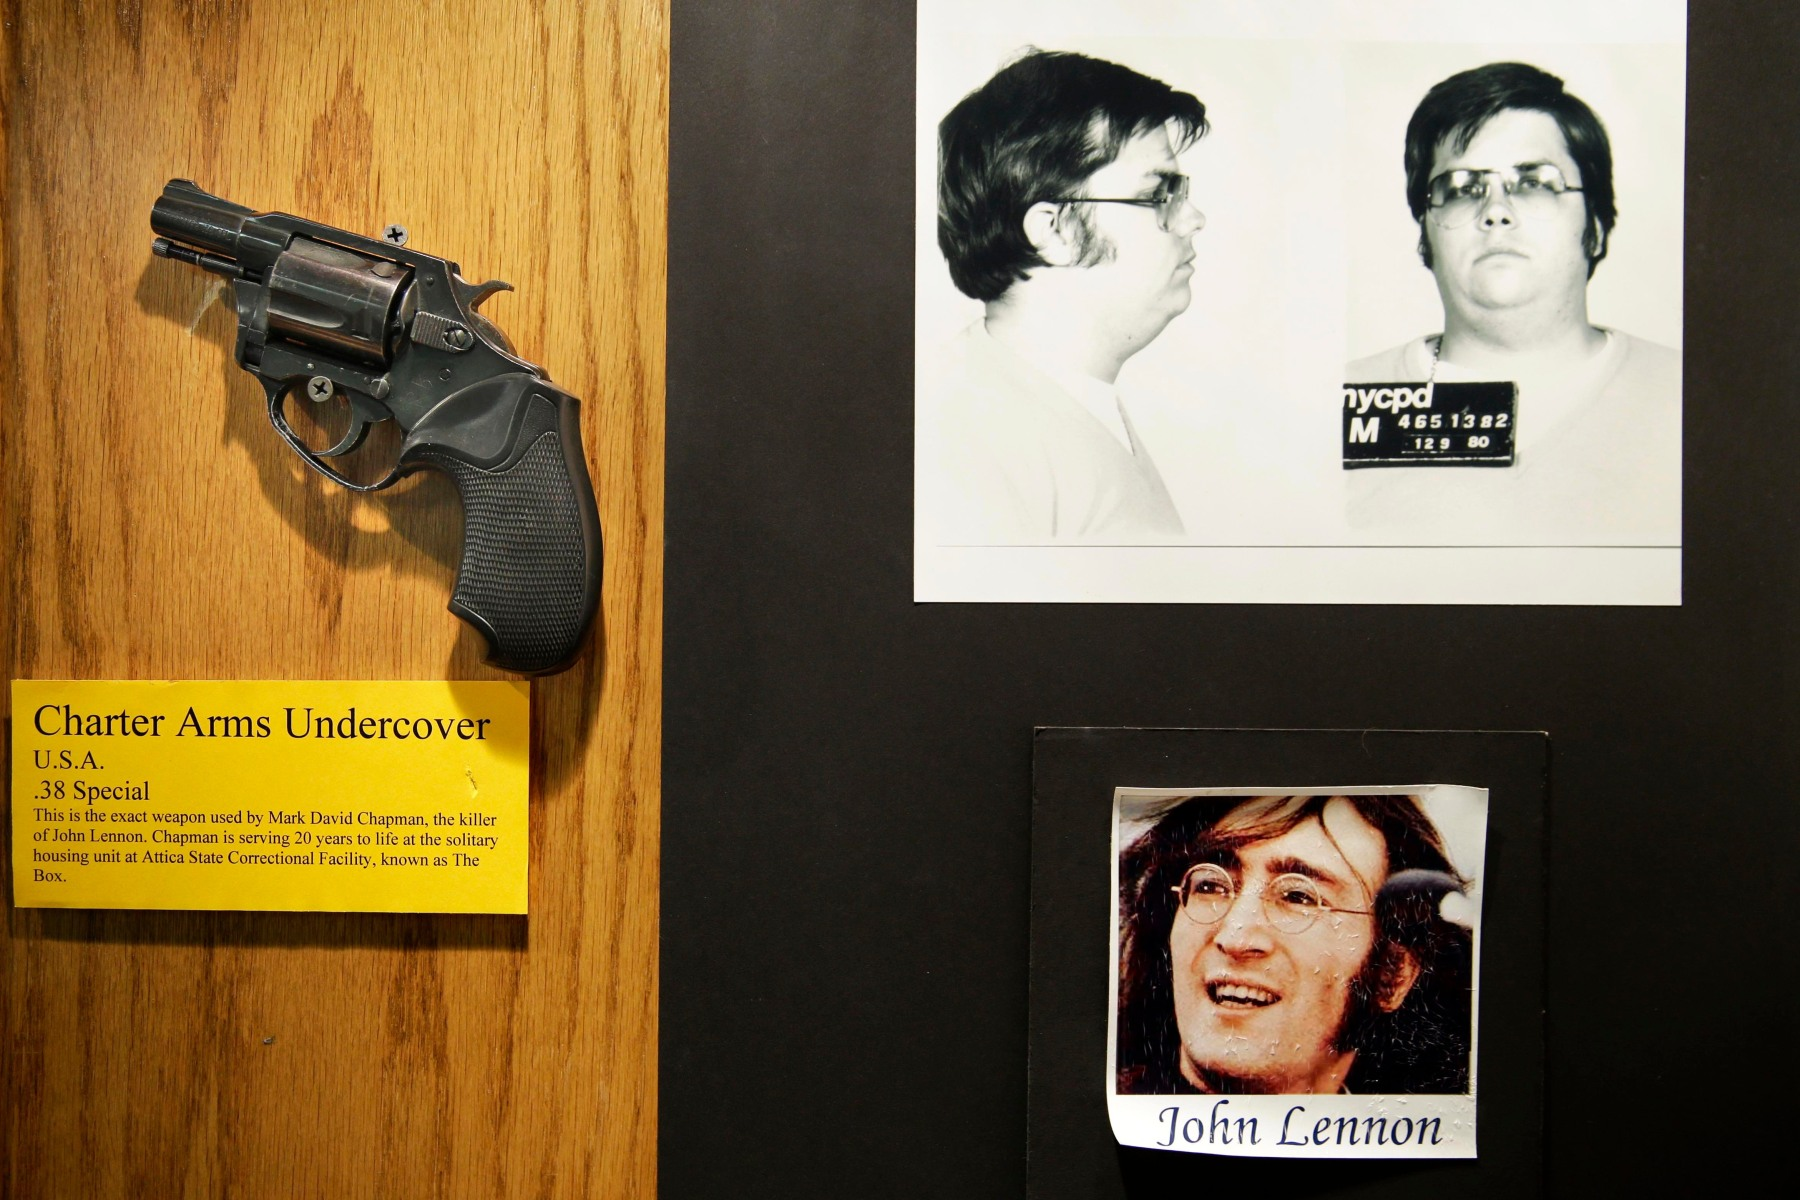 John Lennon S Killer Mark David Chapman Denied Parole For 10th Time Rolling Stone